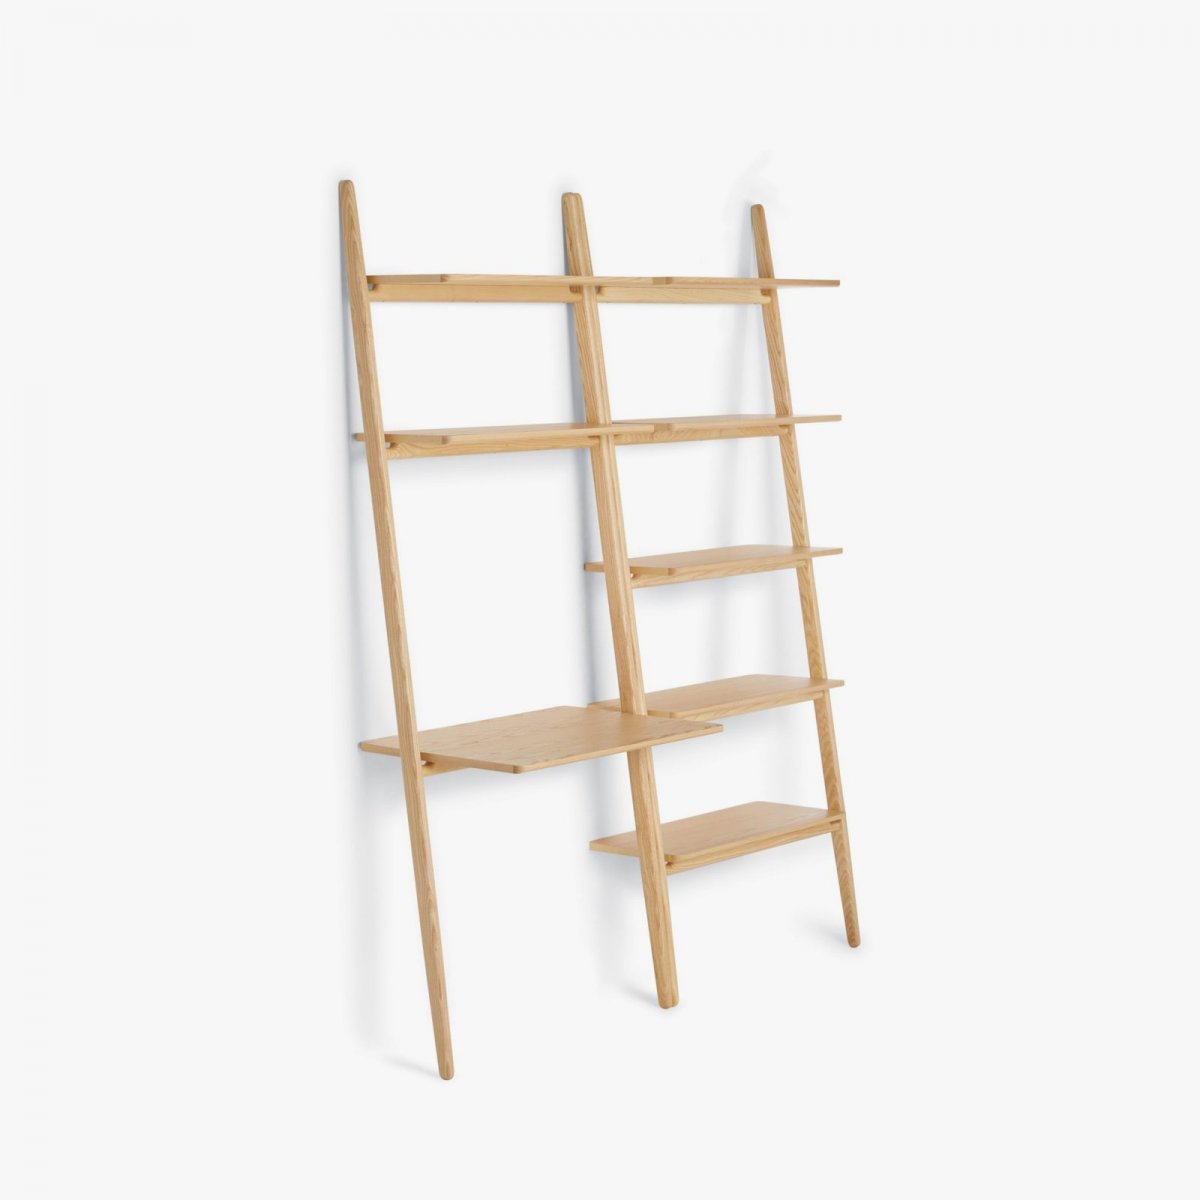 Folk Ladder Shelving and Desk Shelving, ash.